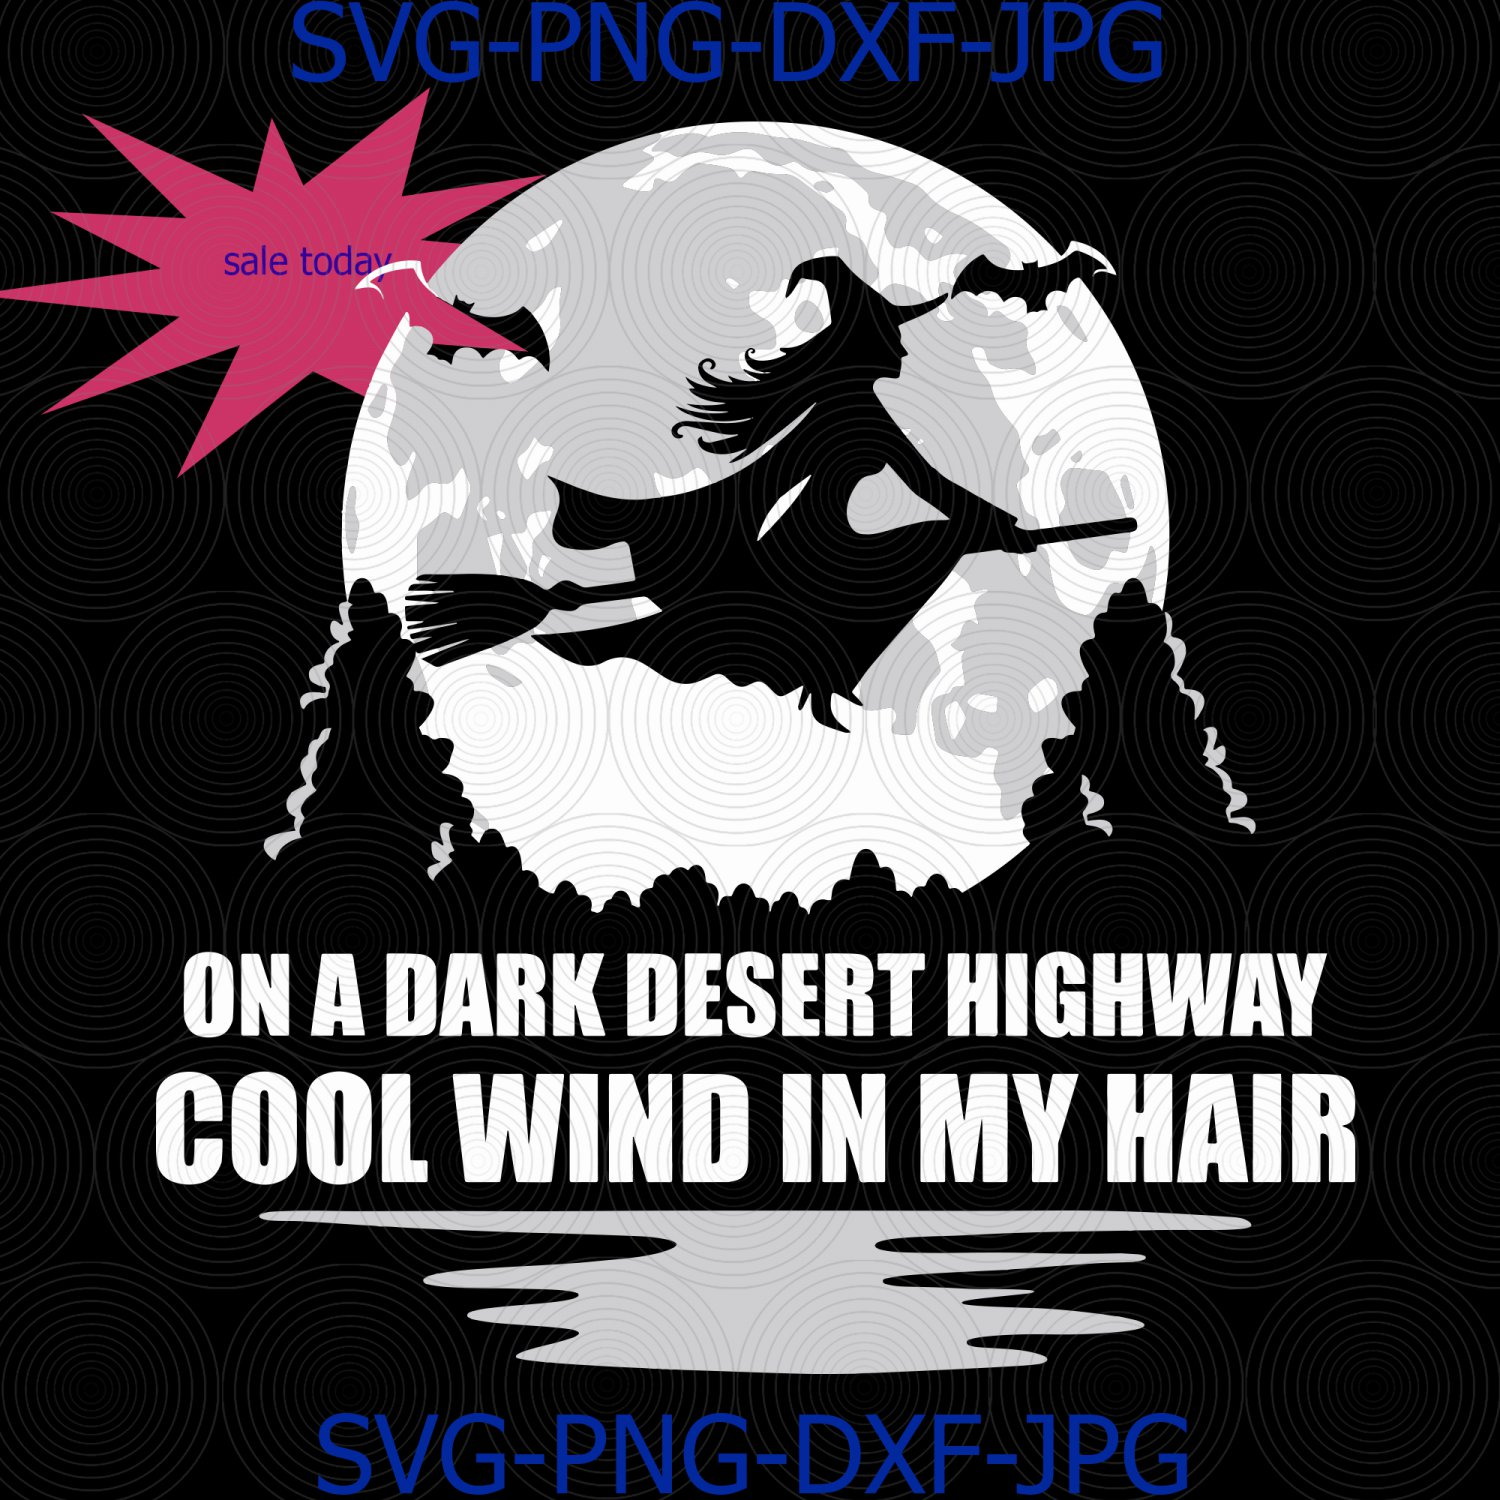 On A Dark Desert Highway Cool Wind In My Hair Witch on a Broom Full Moon Halloween SVG